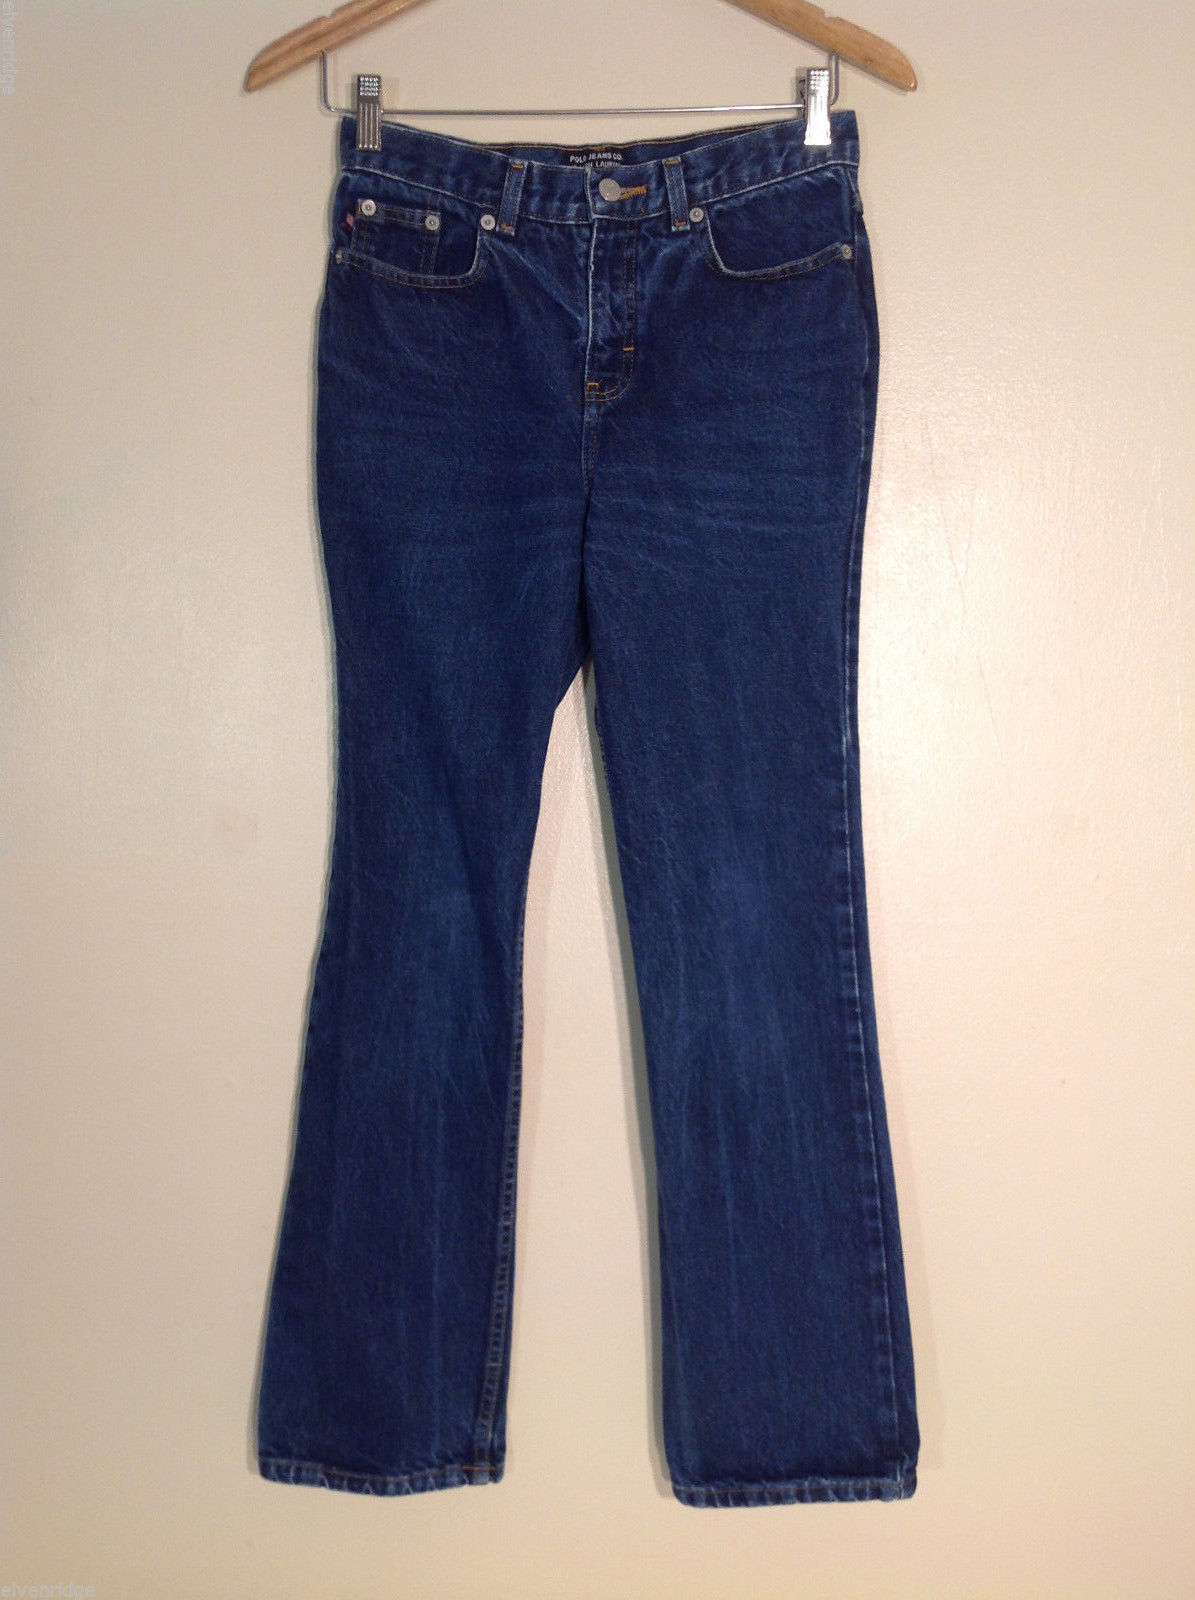 Polo Ralph Lauren Women's Size 8 Denim Blue Jeans Medium Wash, Rise Boot Cut